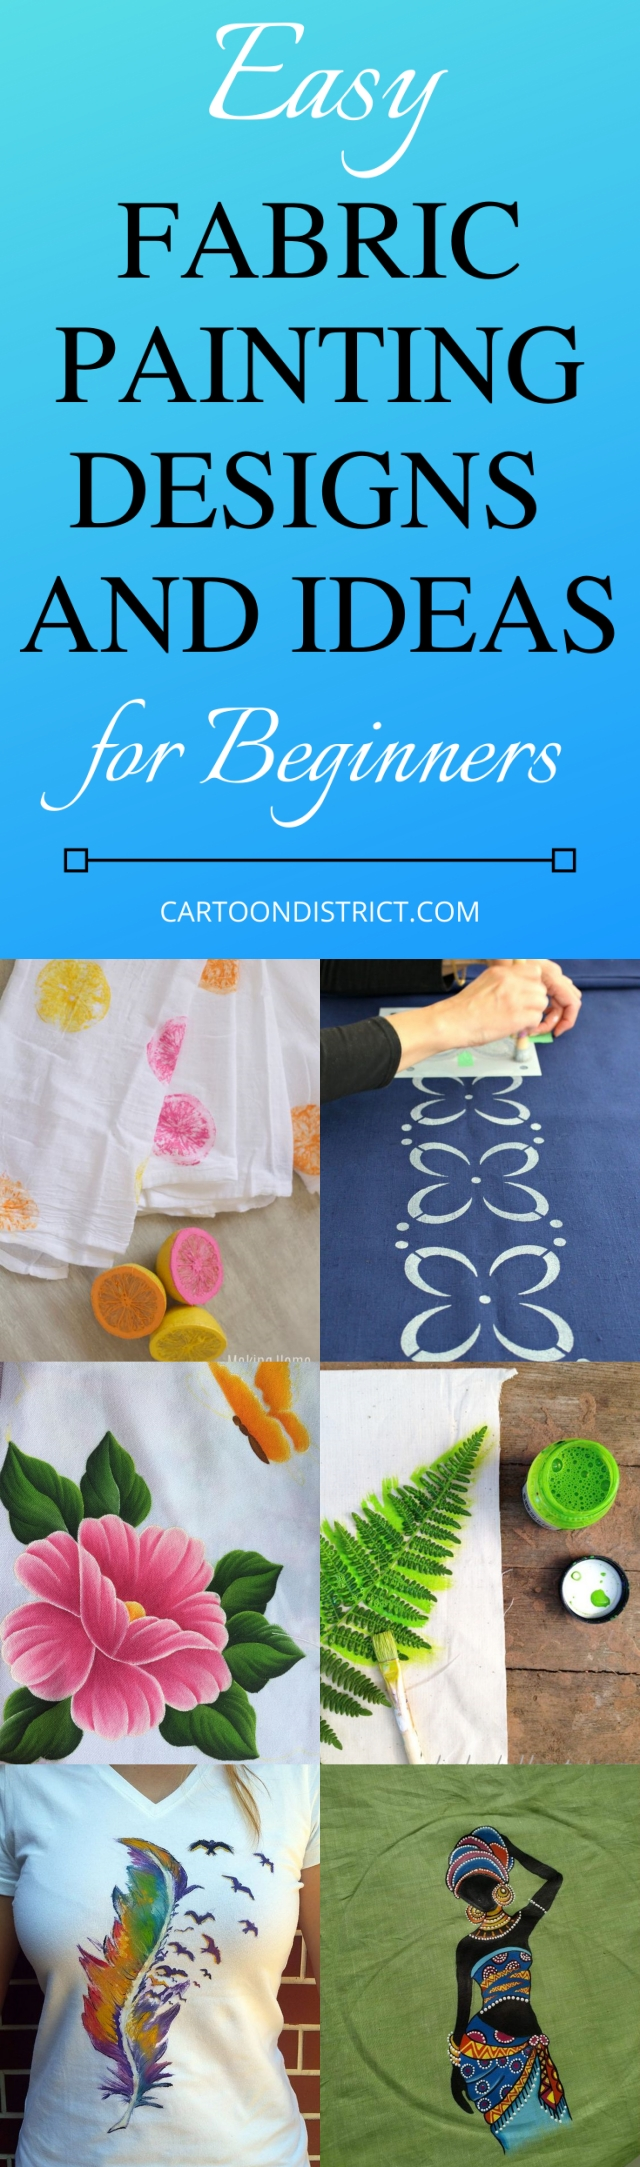 Easy Fabric Painting Designs and Ideas for Beginners